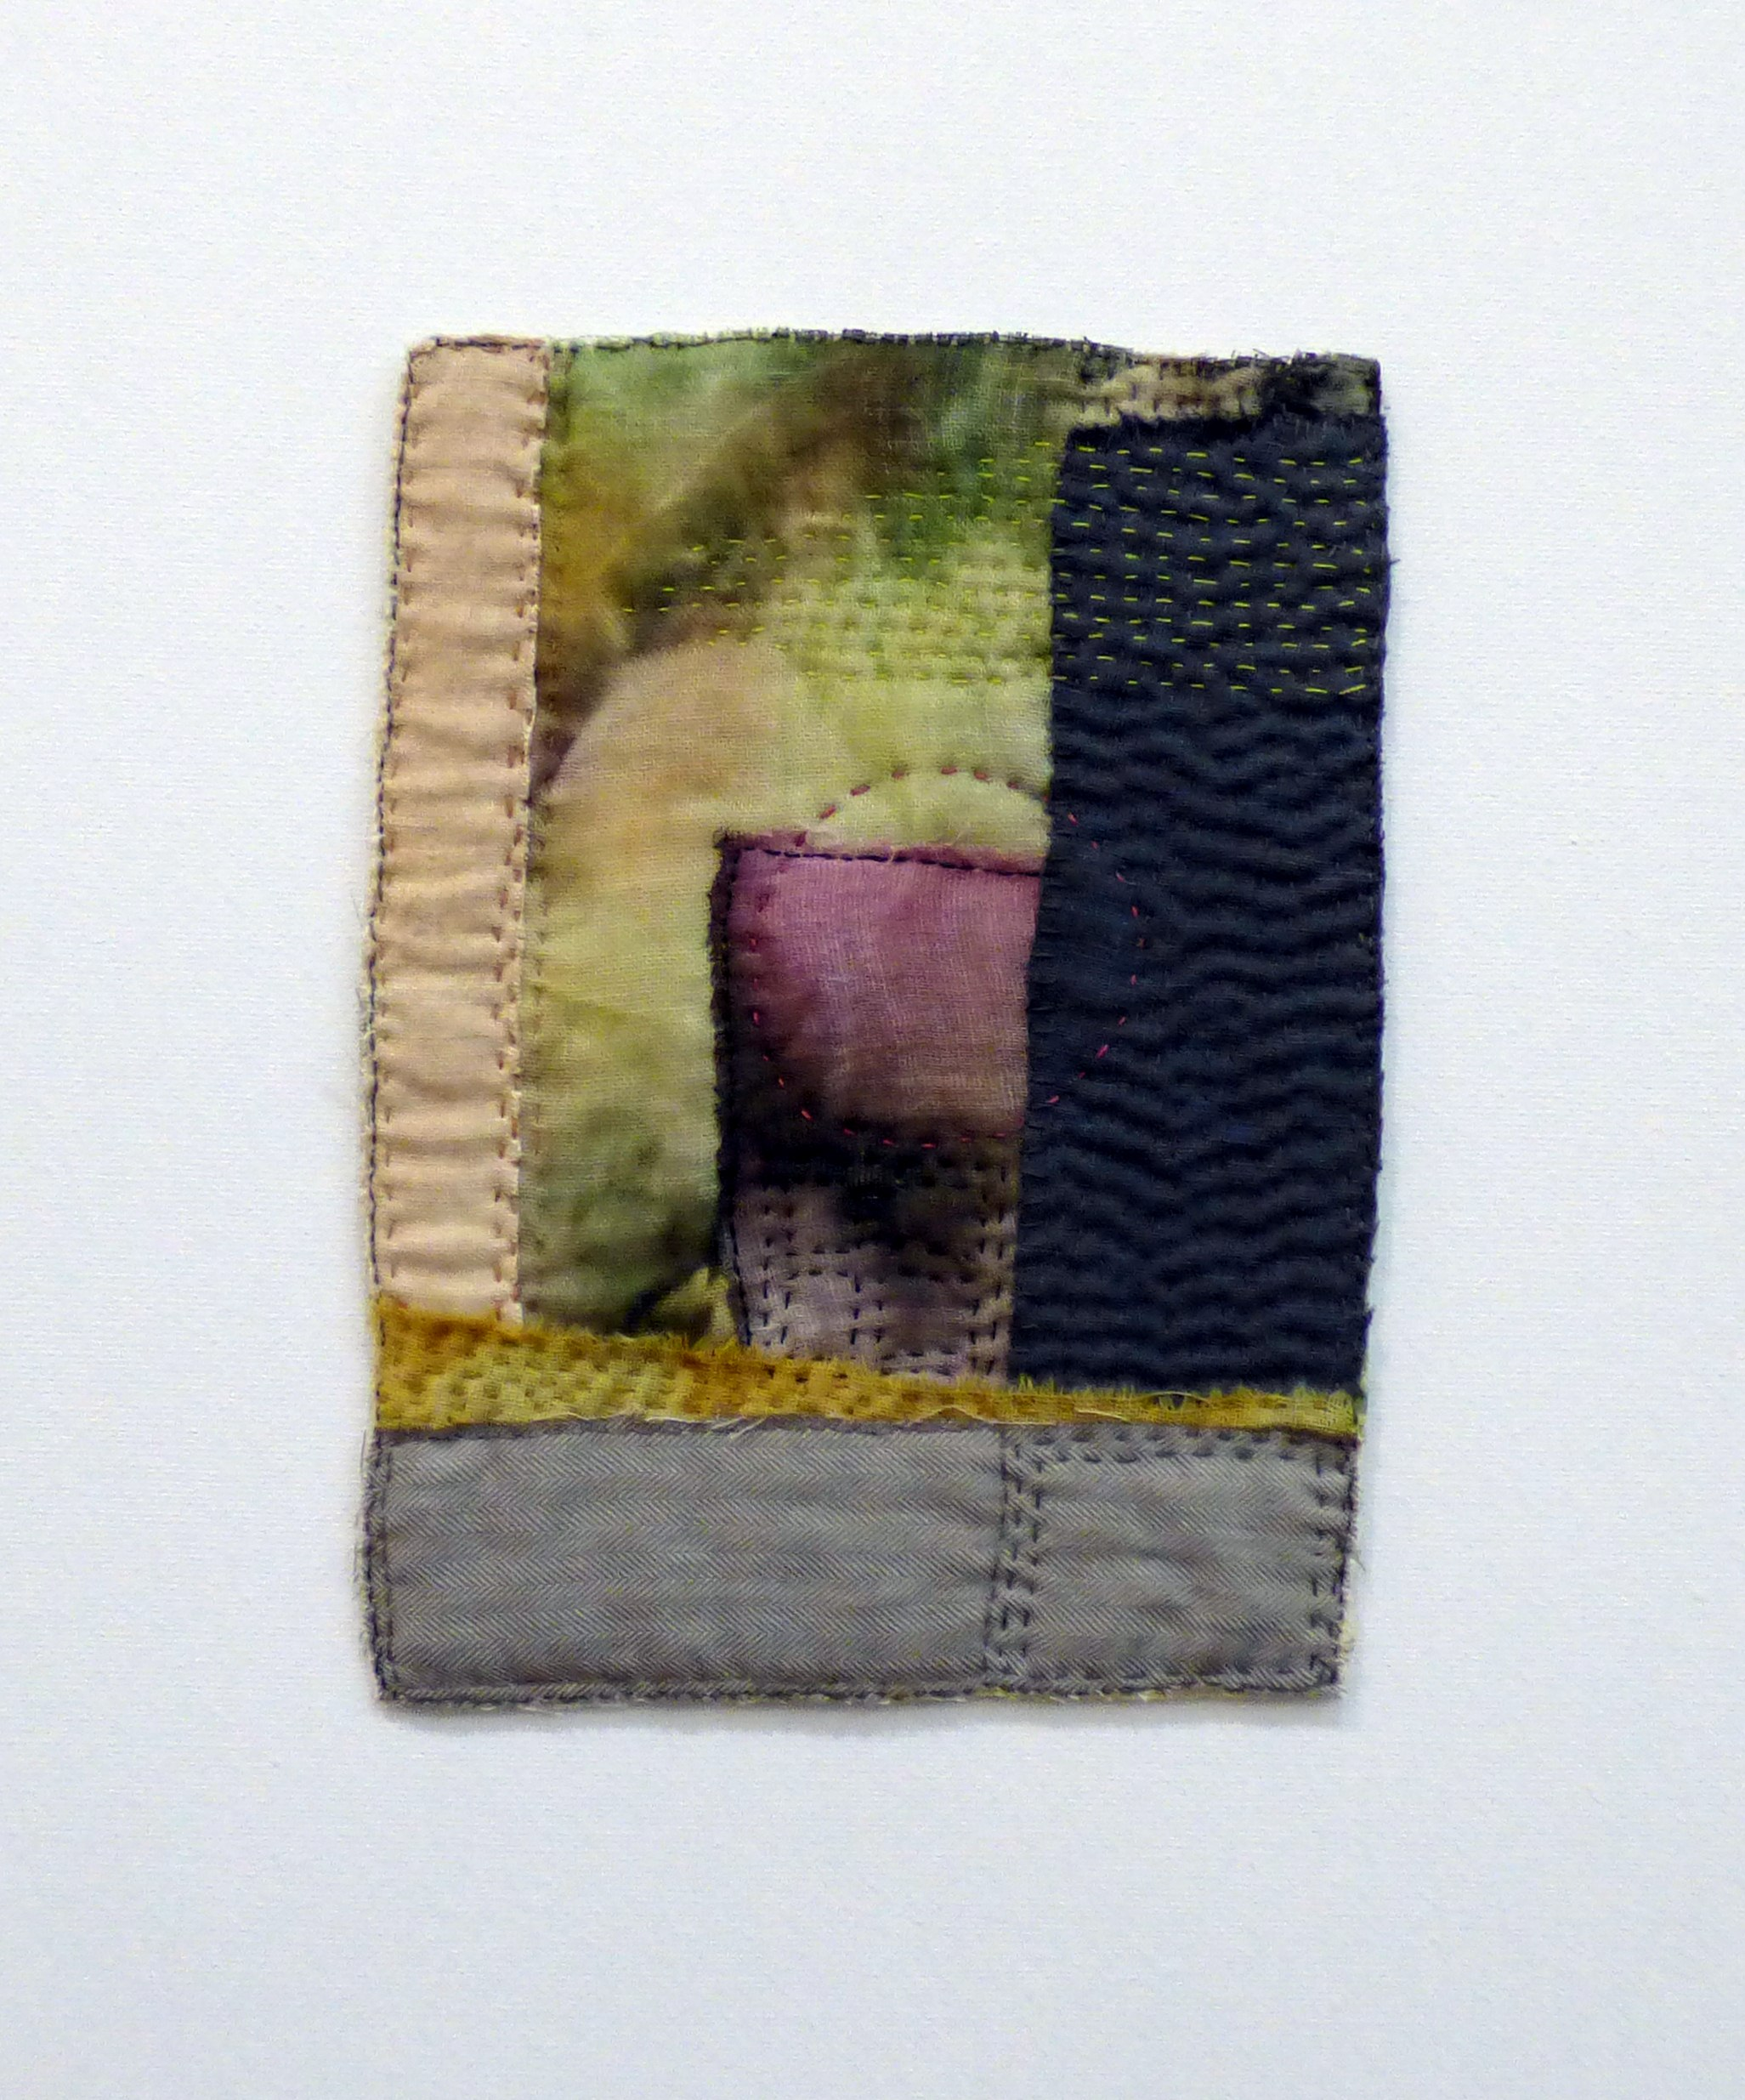 KIRKDALE GOOGLE EARTH TRIPTYCH 1, by Liz Smith, Glossop & District EG, re-purposed and hand dyed fabric, hand stitching